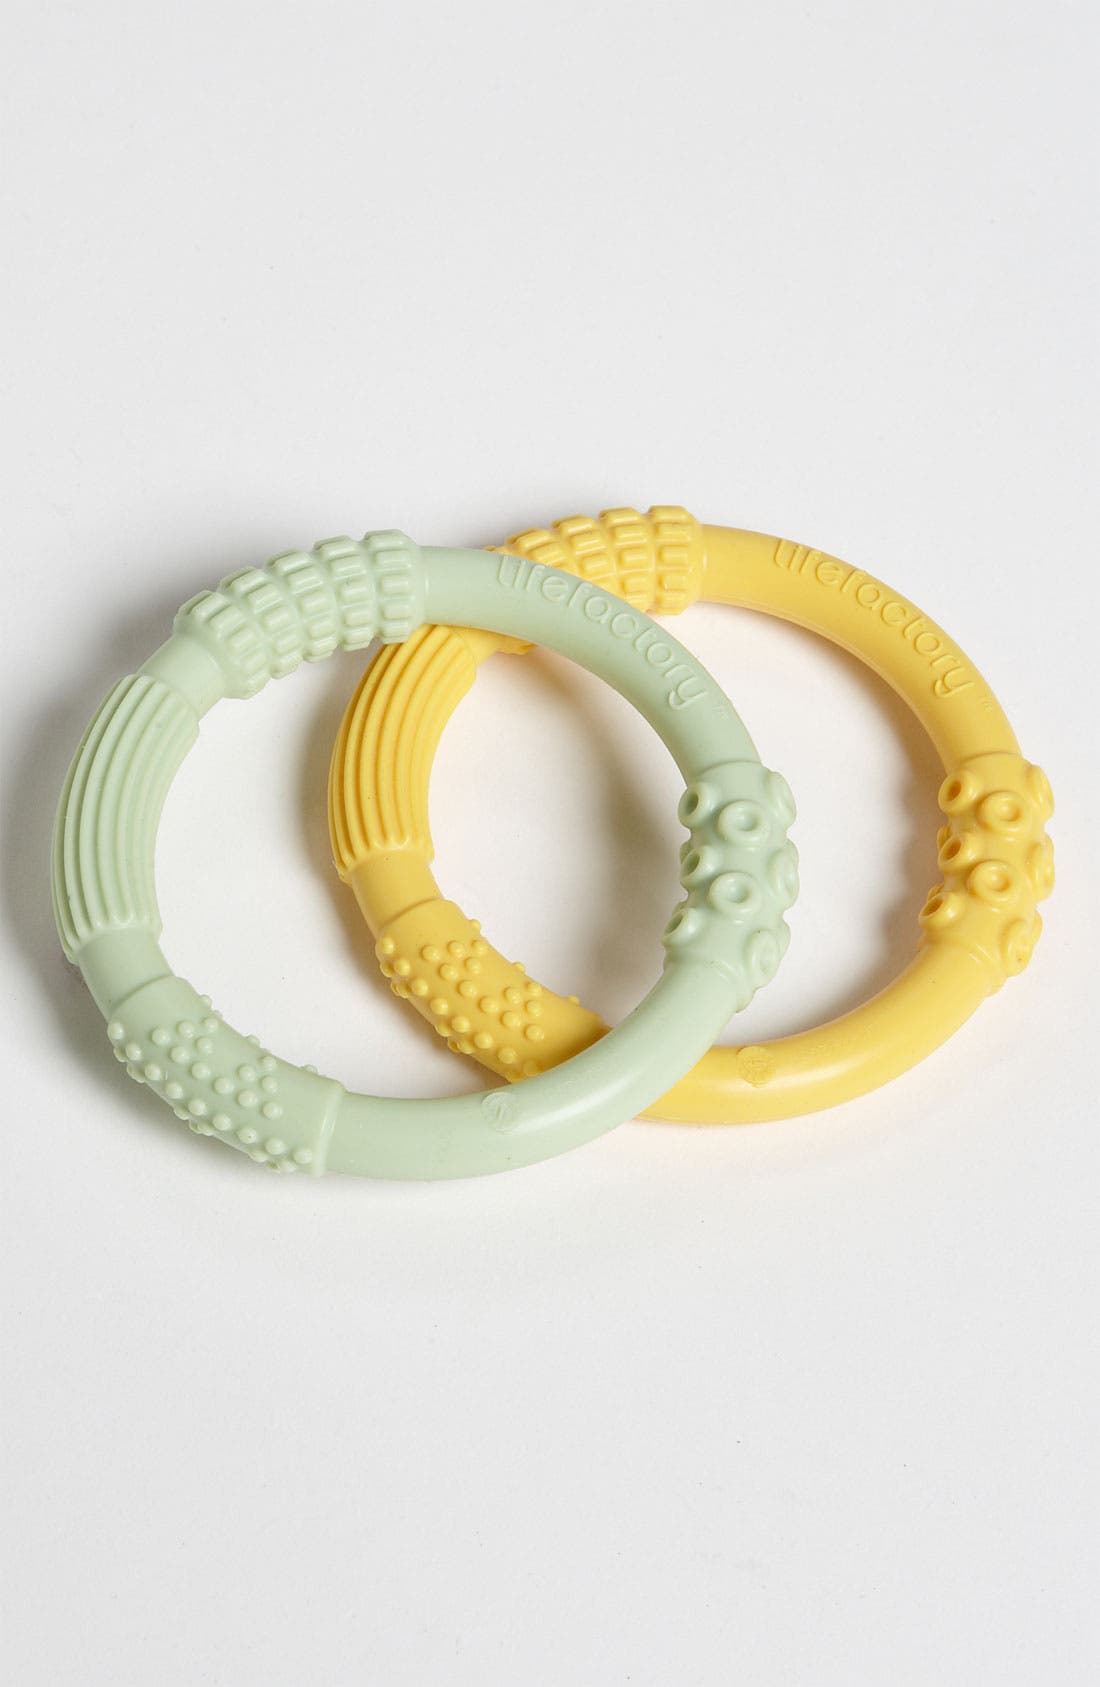 Main Image - Lifefactory Silicone Teether (2-Pack)